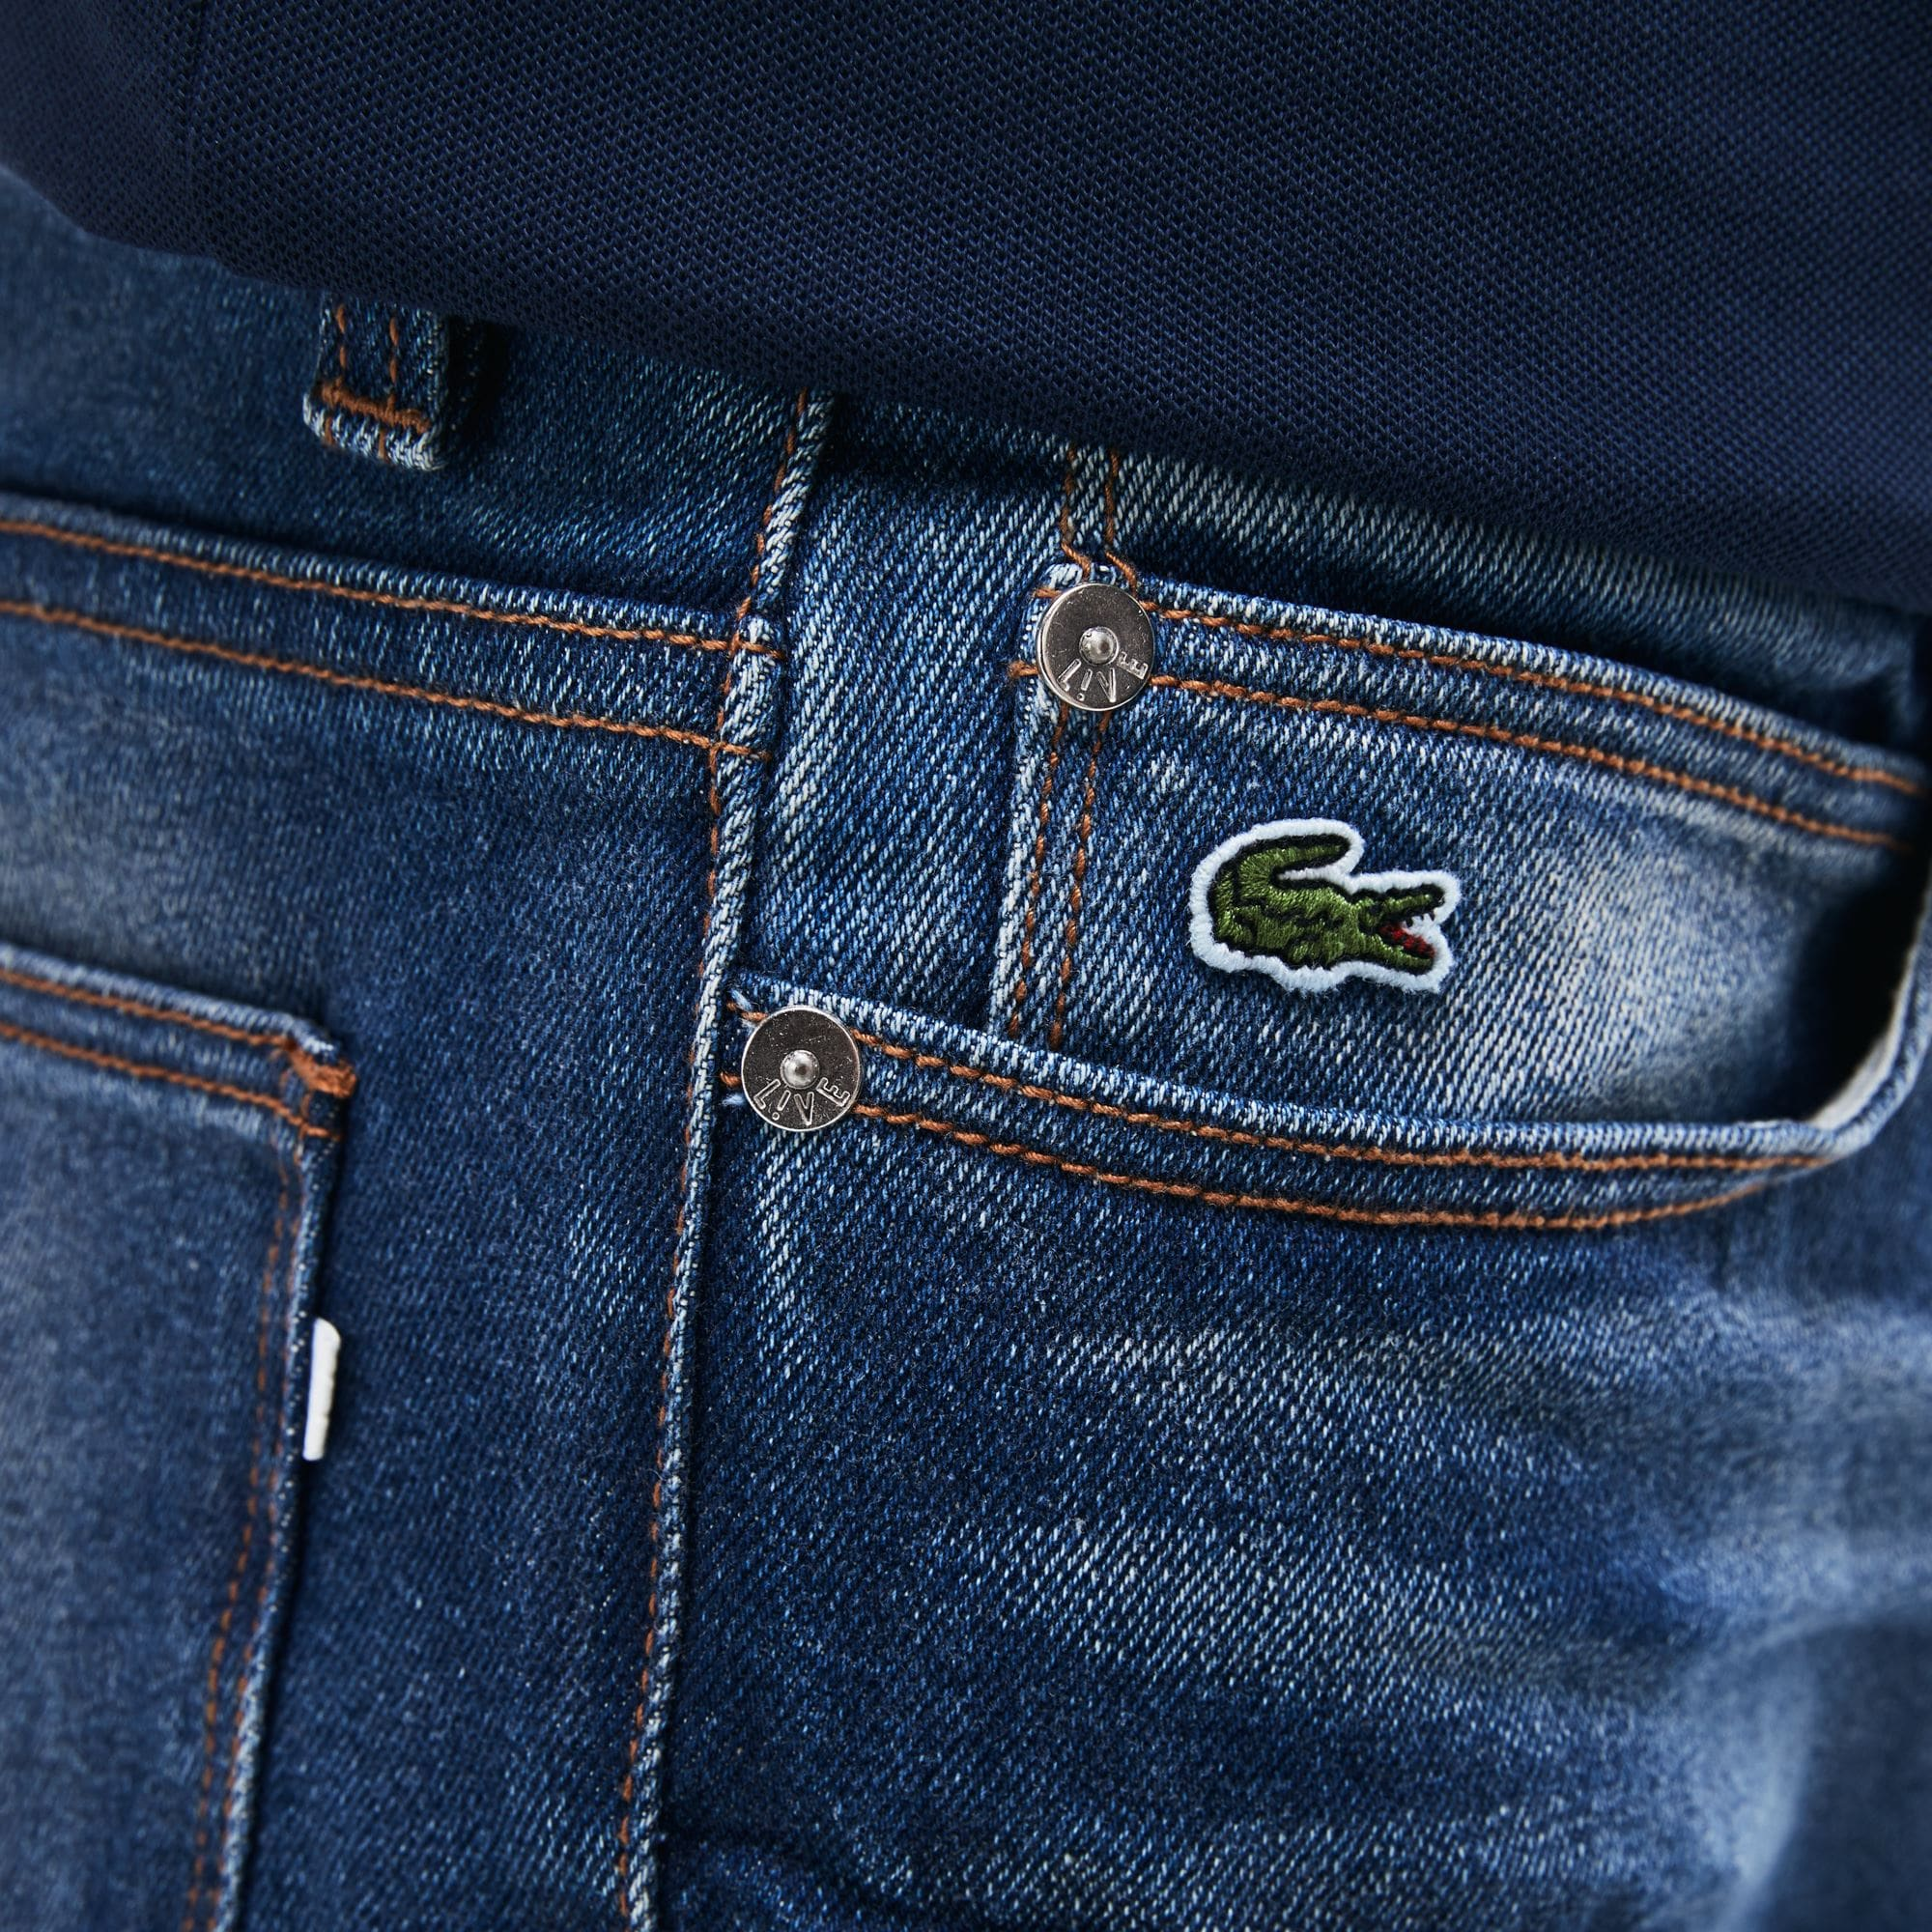 DENIM - Denim trousers Lacoste o6eIRzIa1